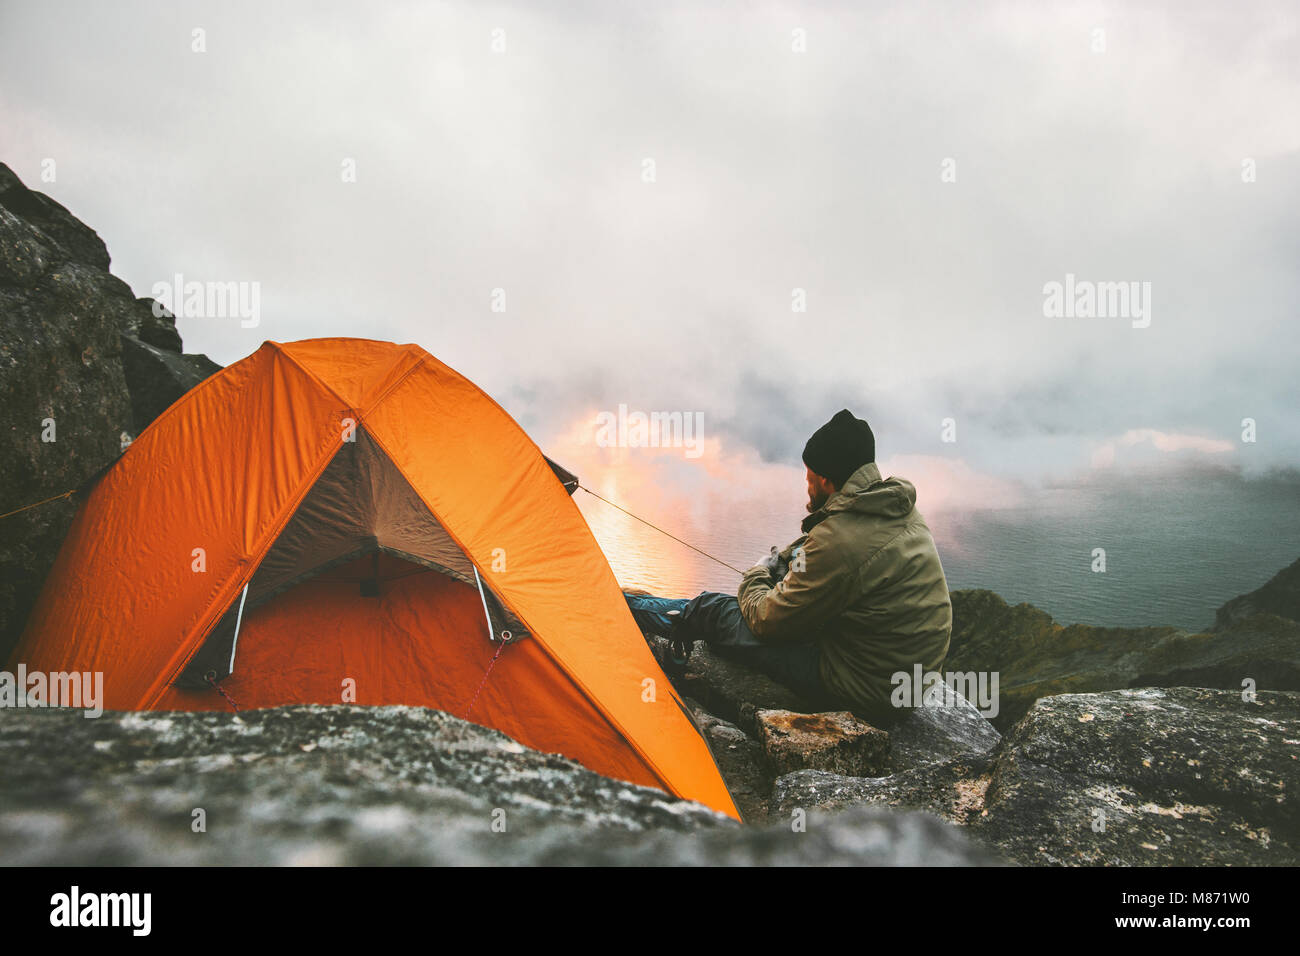 Man traveler relaxing in mountains near of tent camping gear outdoor Travel adventure lifestyle concept hiking active - Stock Image